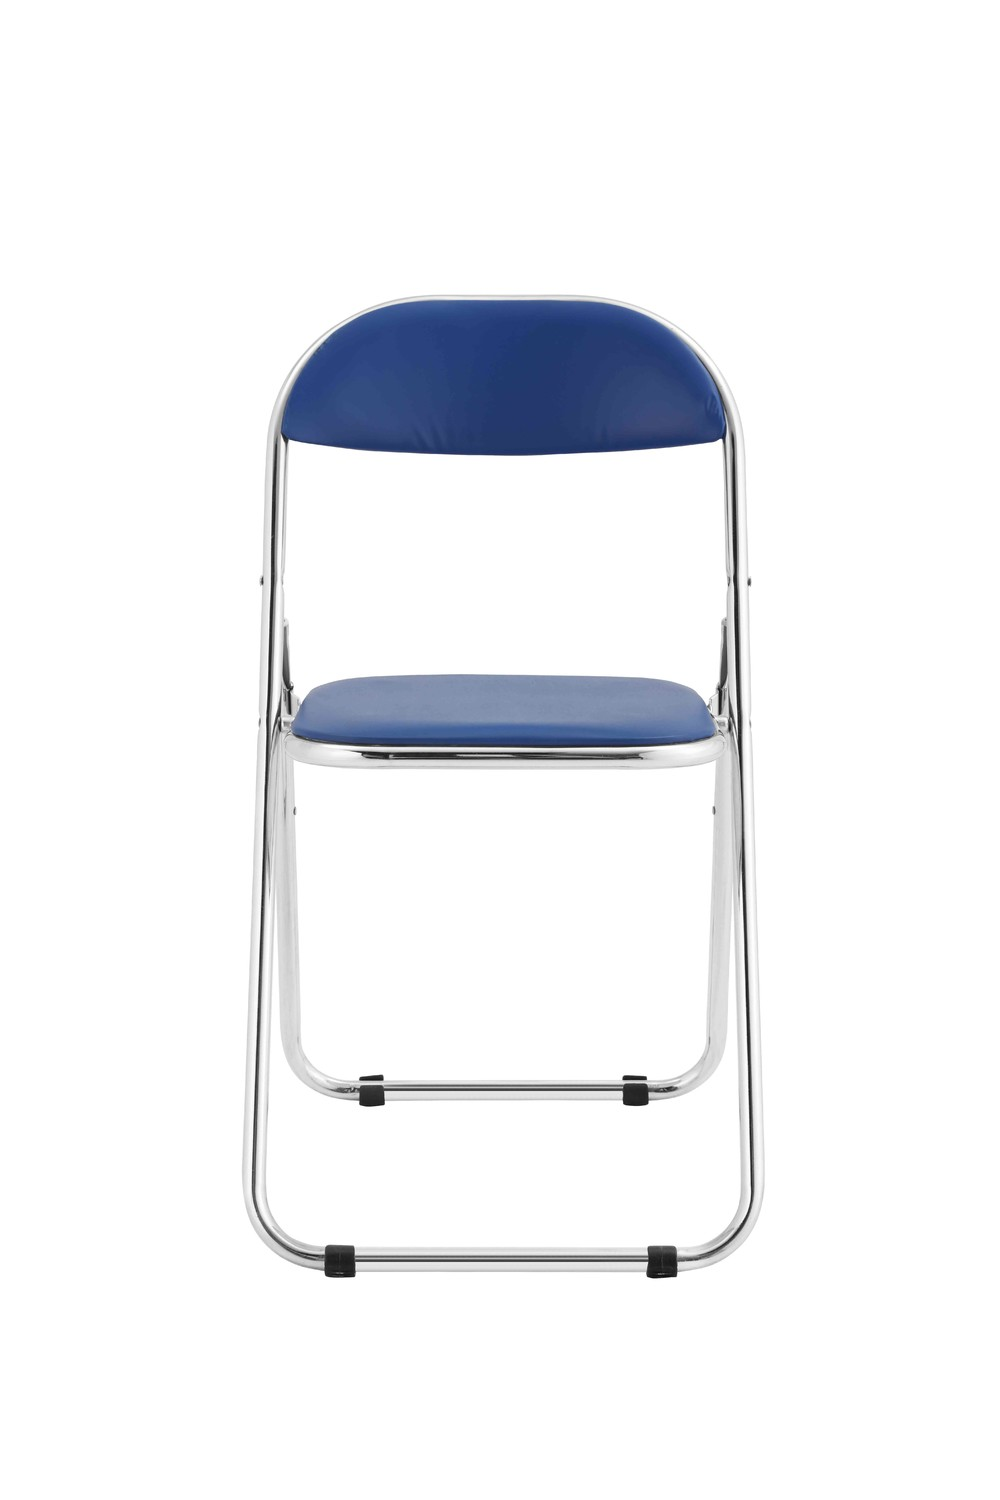 Premium steel frame metal folding chair with plastic base and back